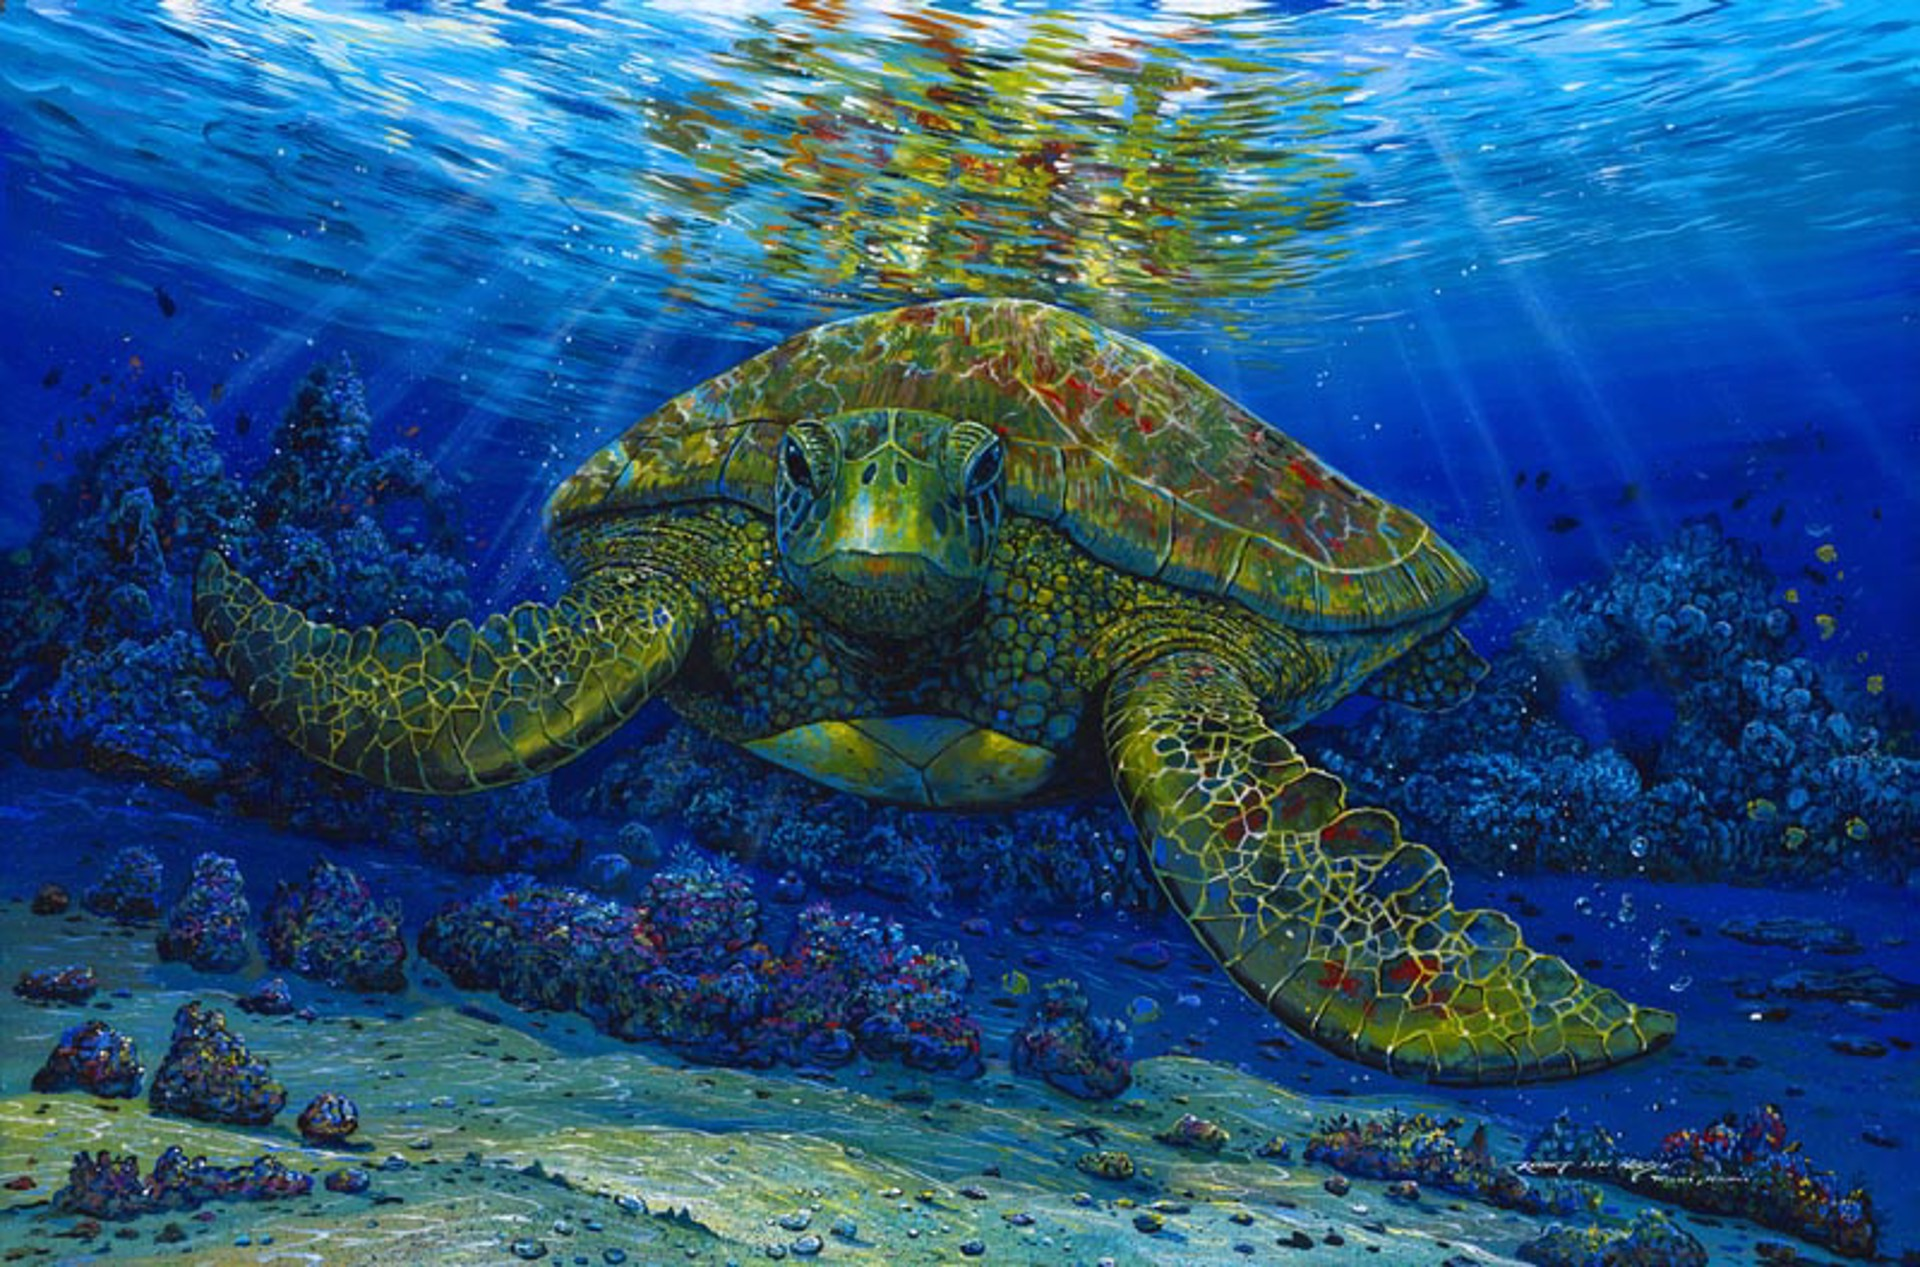 Talk Story With A Turtle by Robert Lyn Nelson